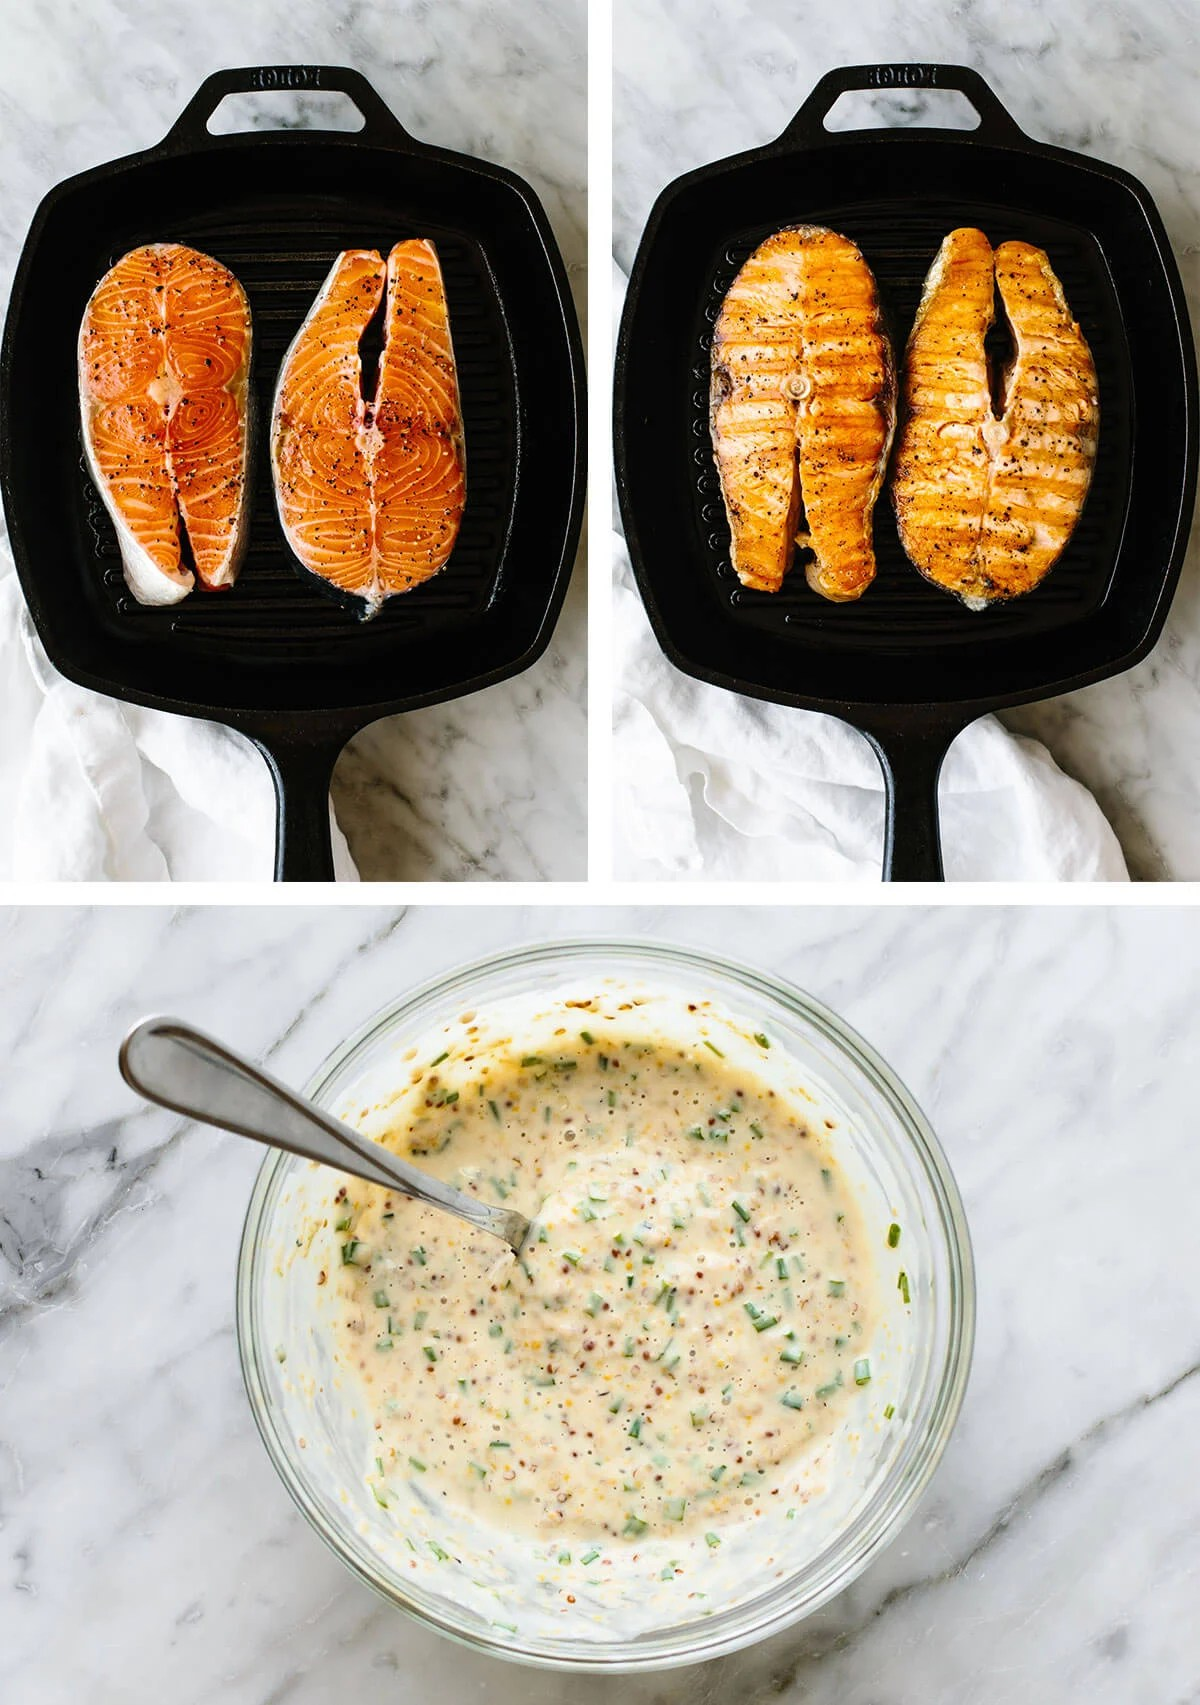 Grilling salmon steaks on a grill.